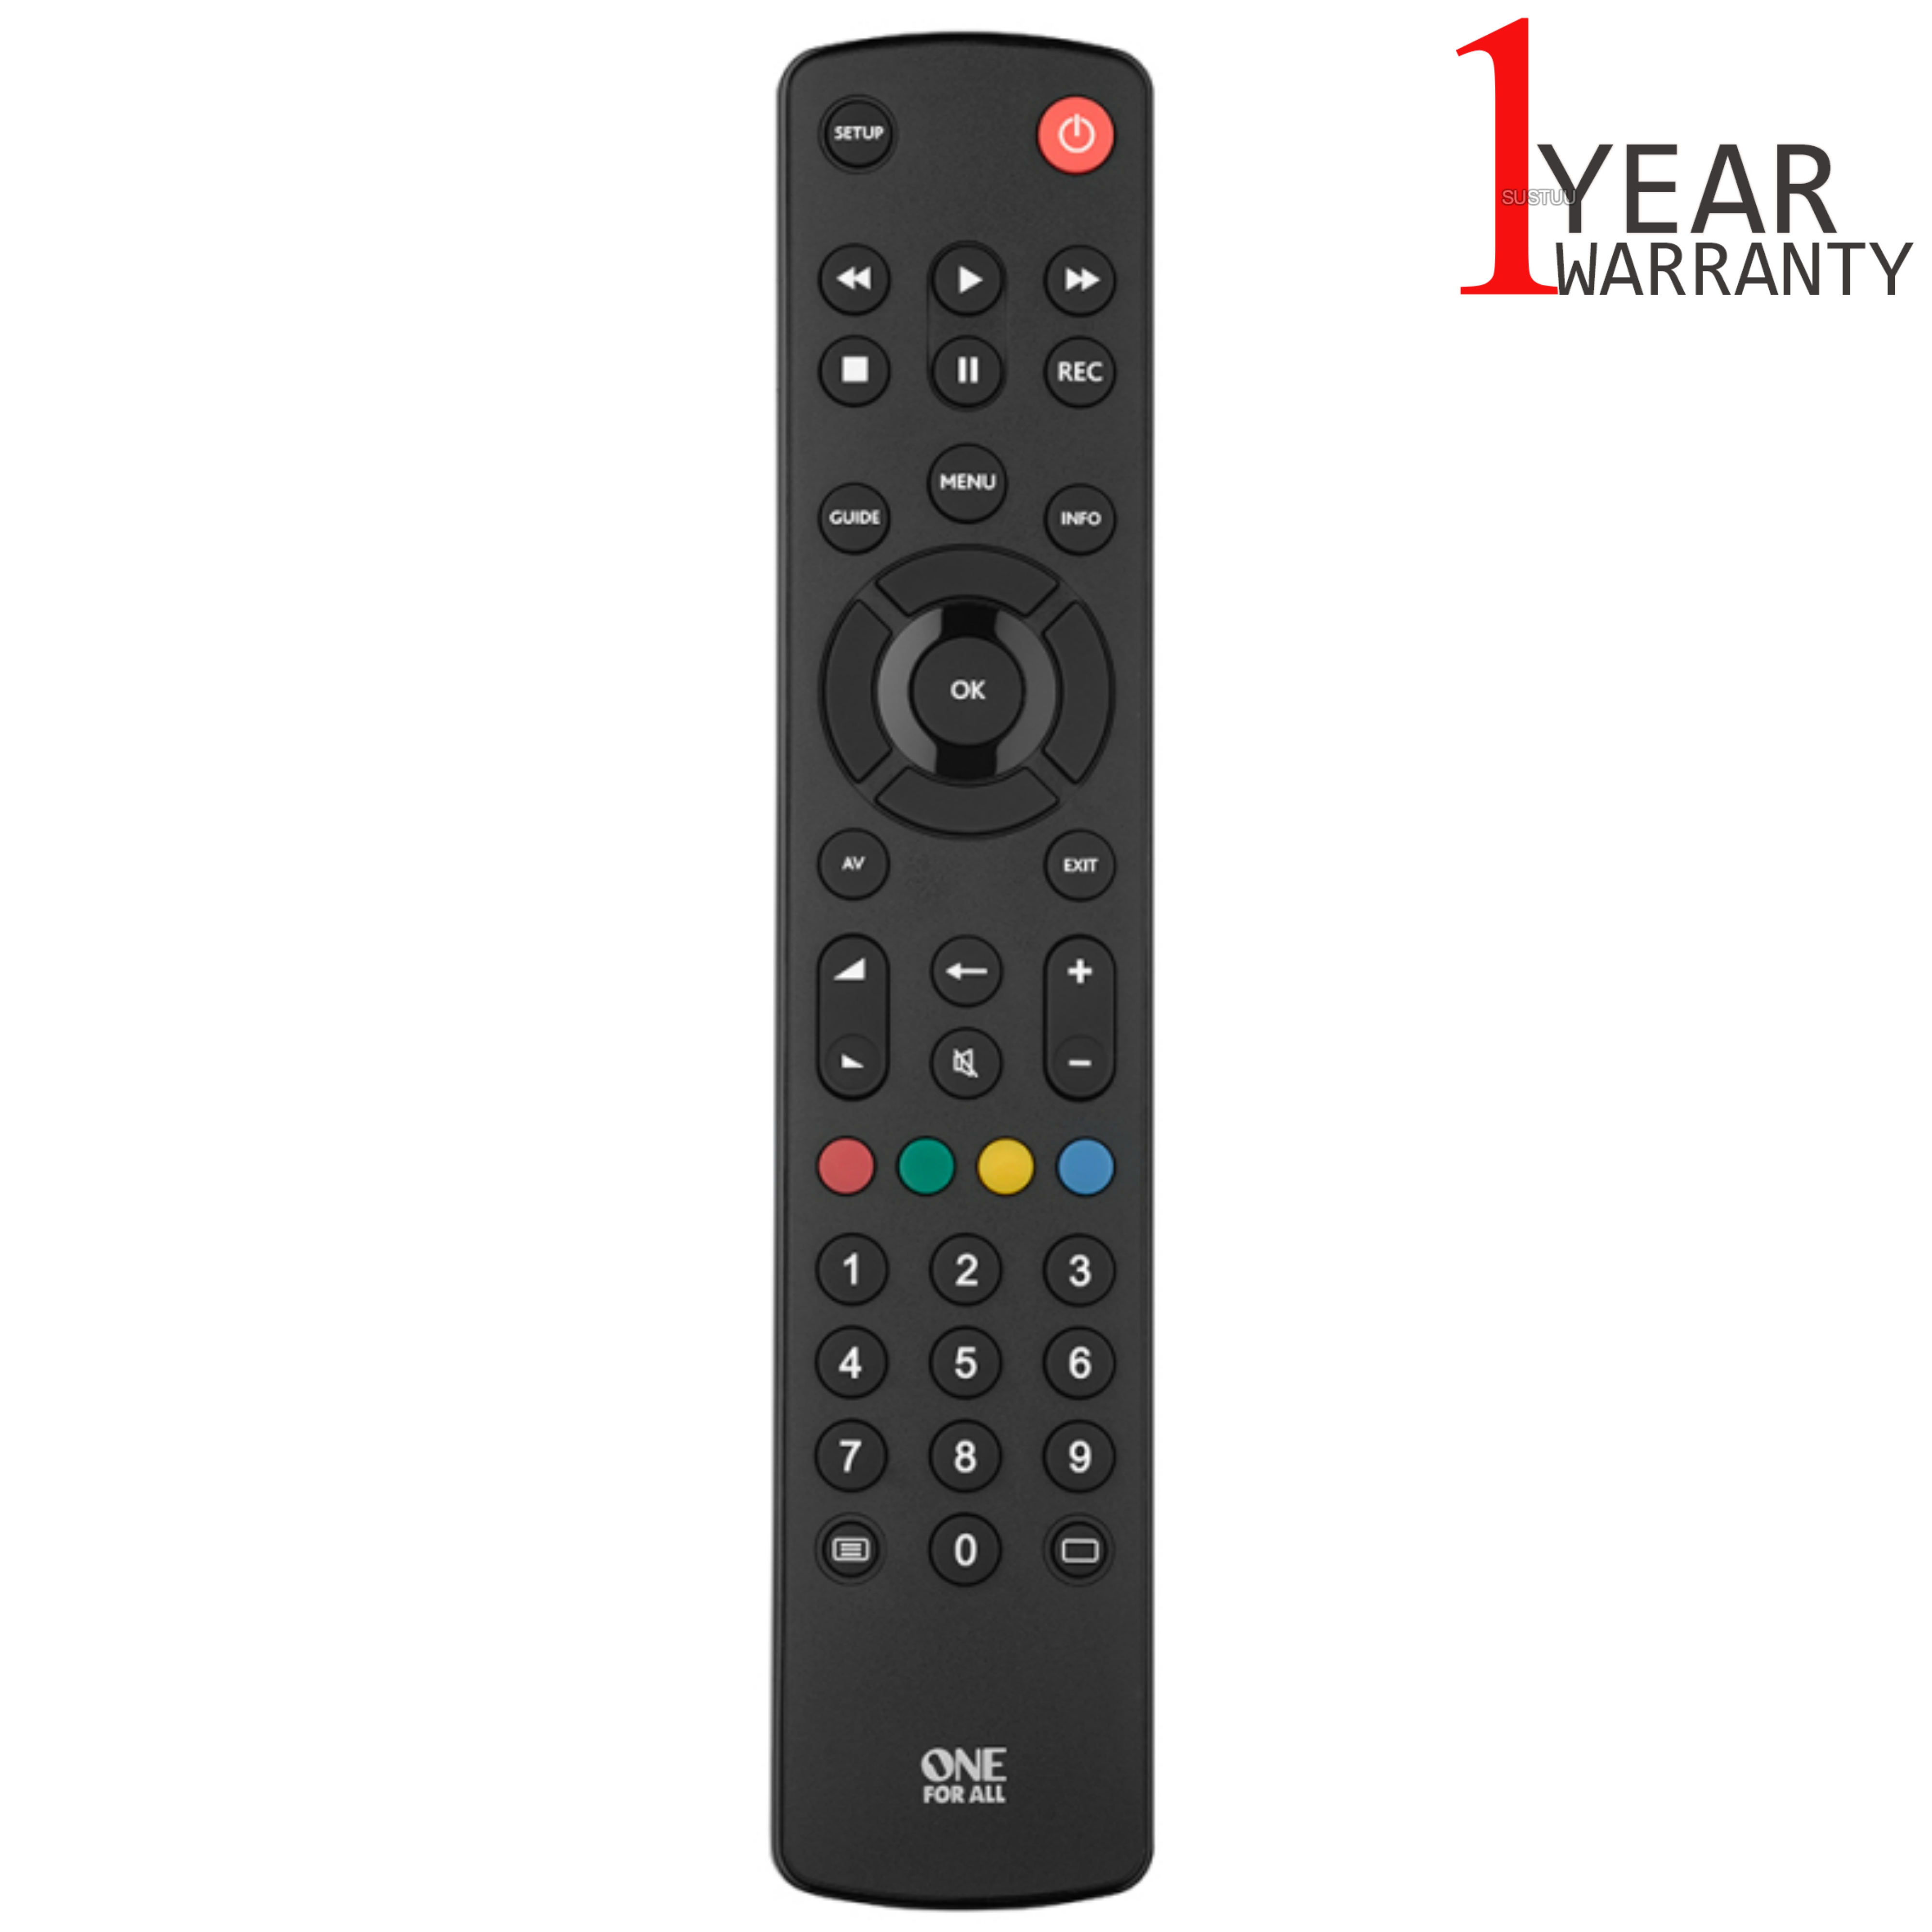 One For All Contour Universal Remote Control For TV | Easy Setup | Black | URC1210 | NEW